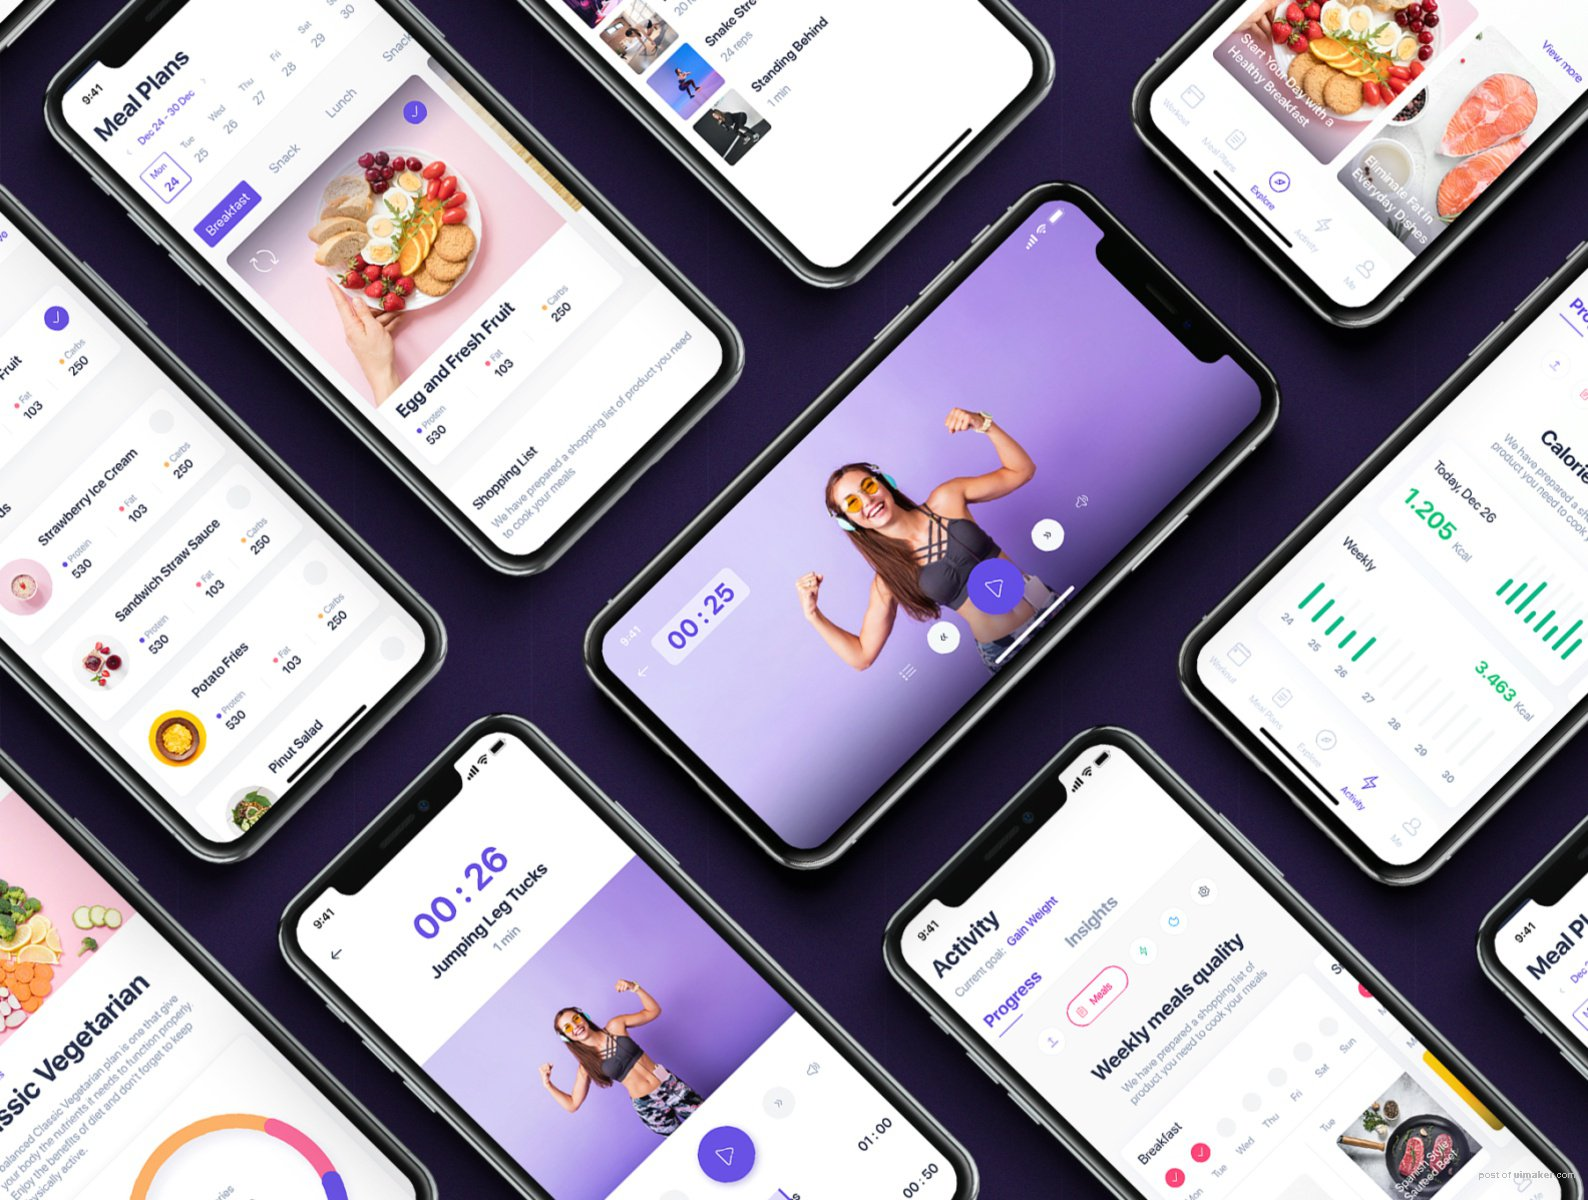 Fitbox - Workouts & Meal Planner UI Kit